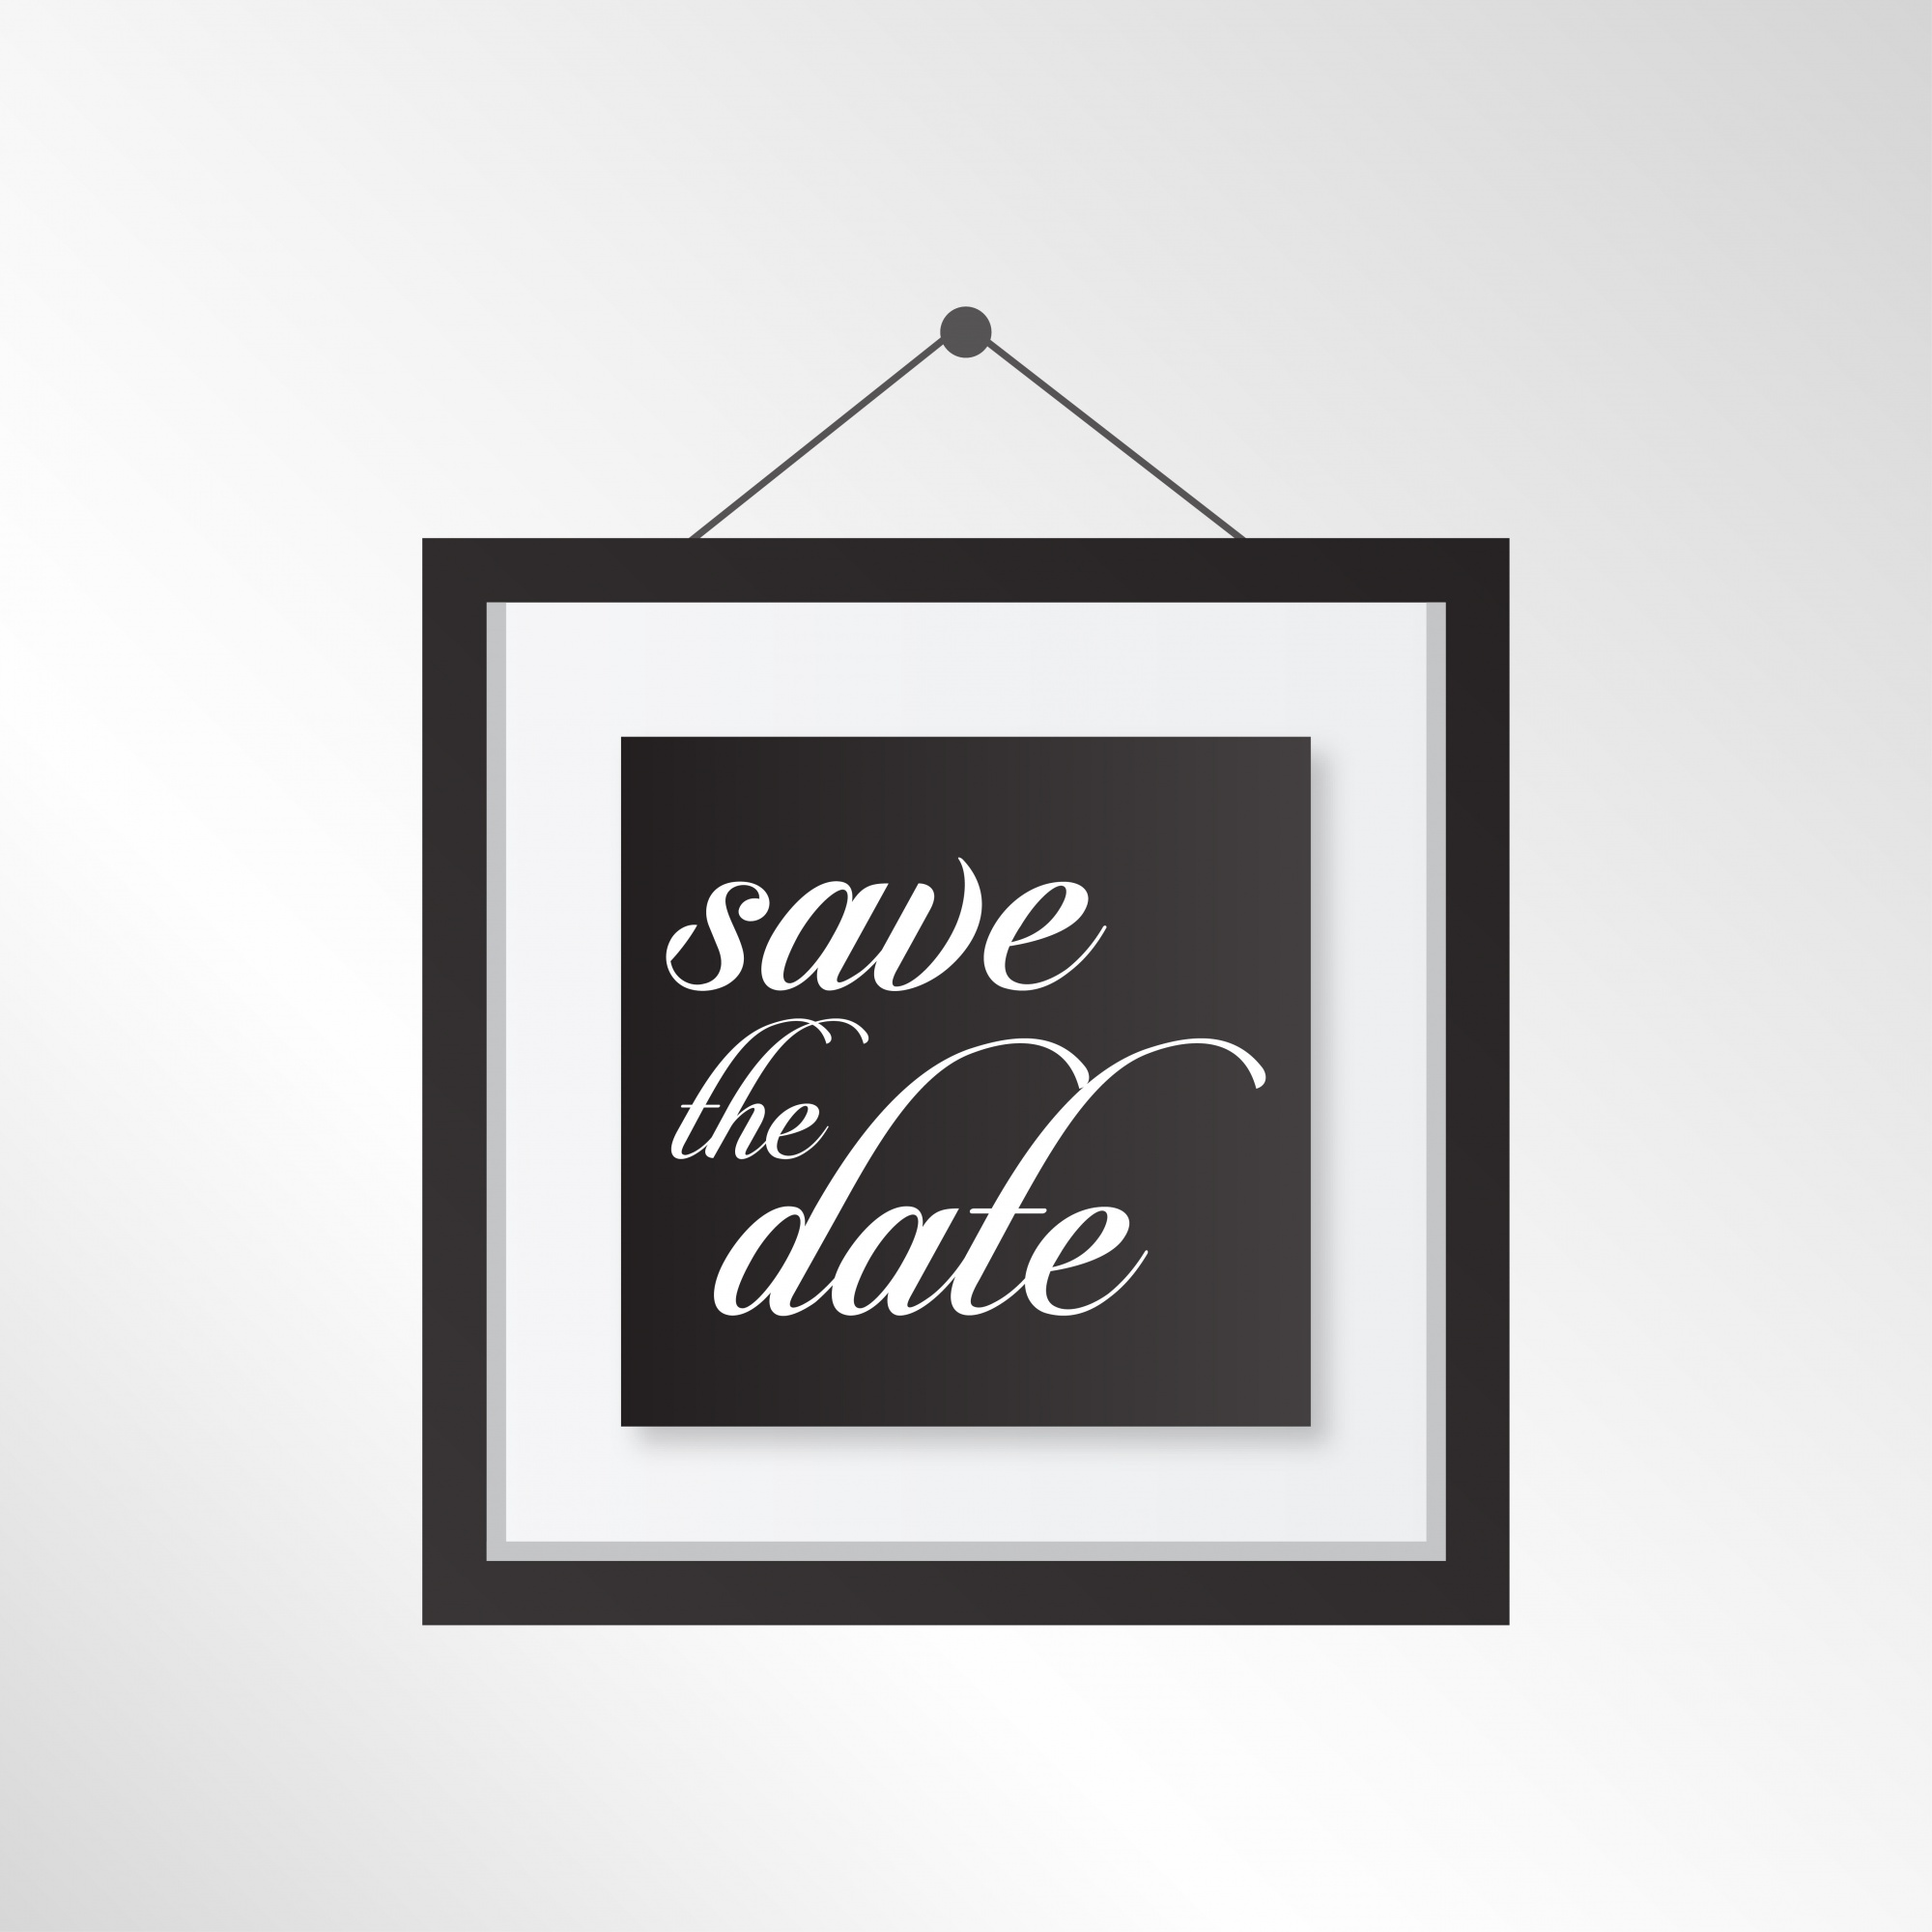 Save the date frame template